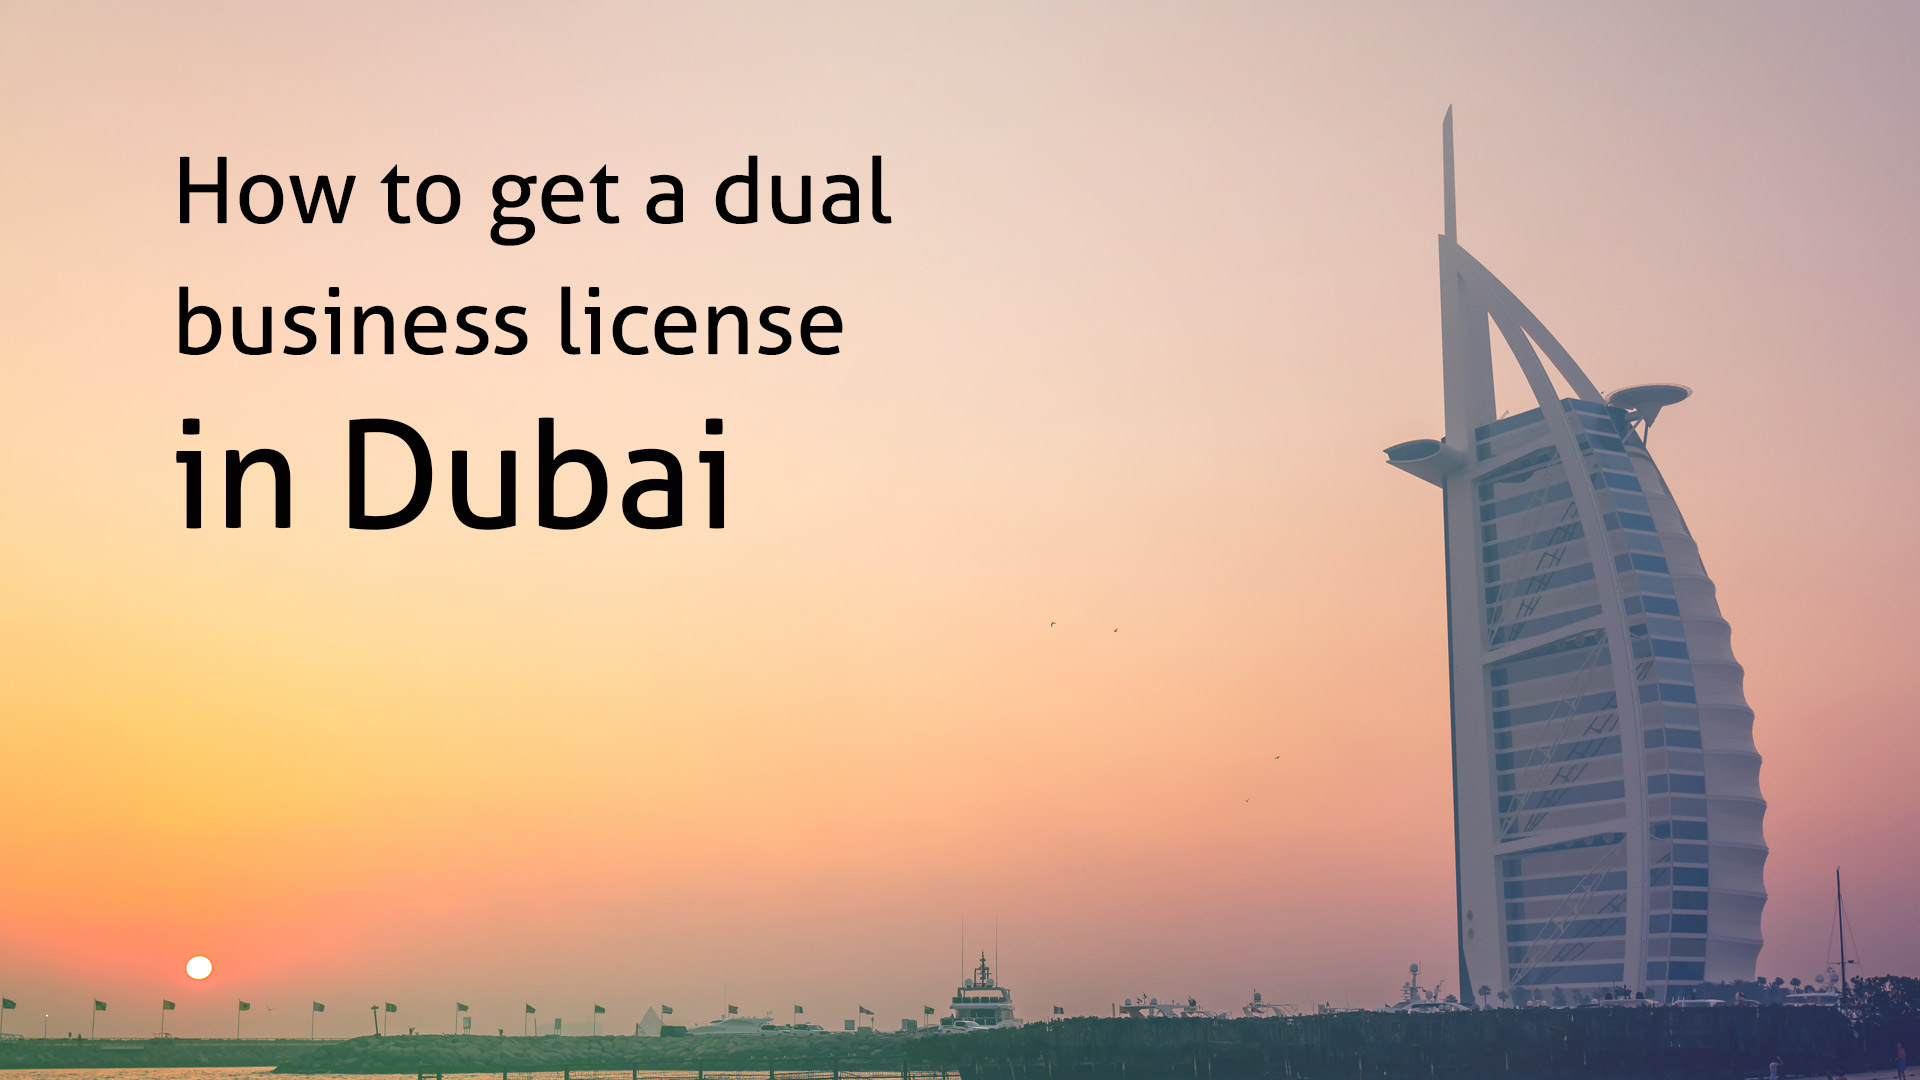 How to get a dual business license in Dubai